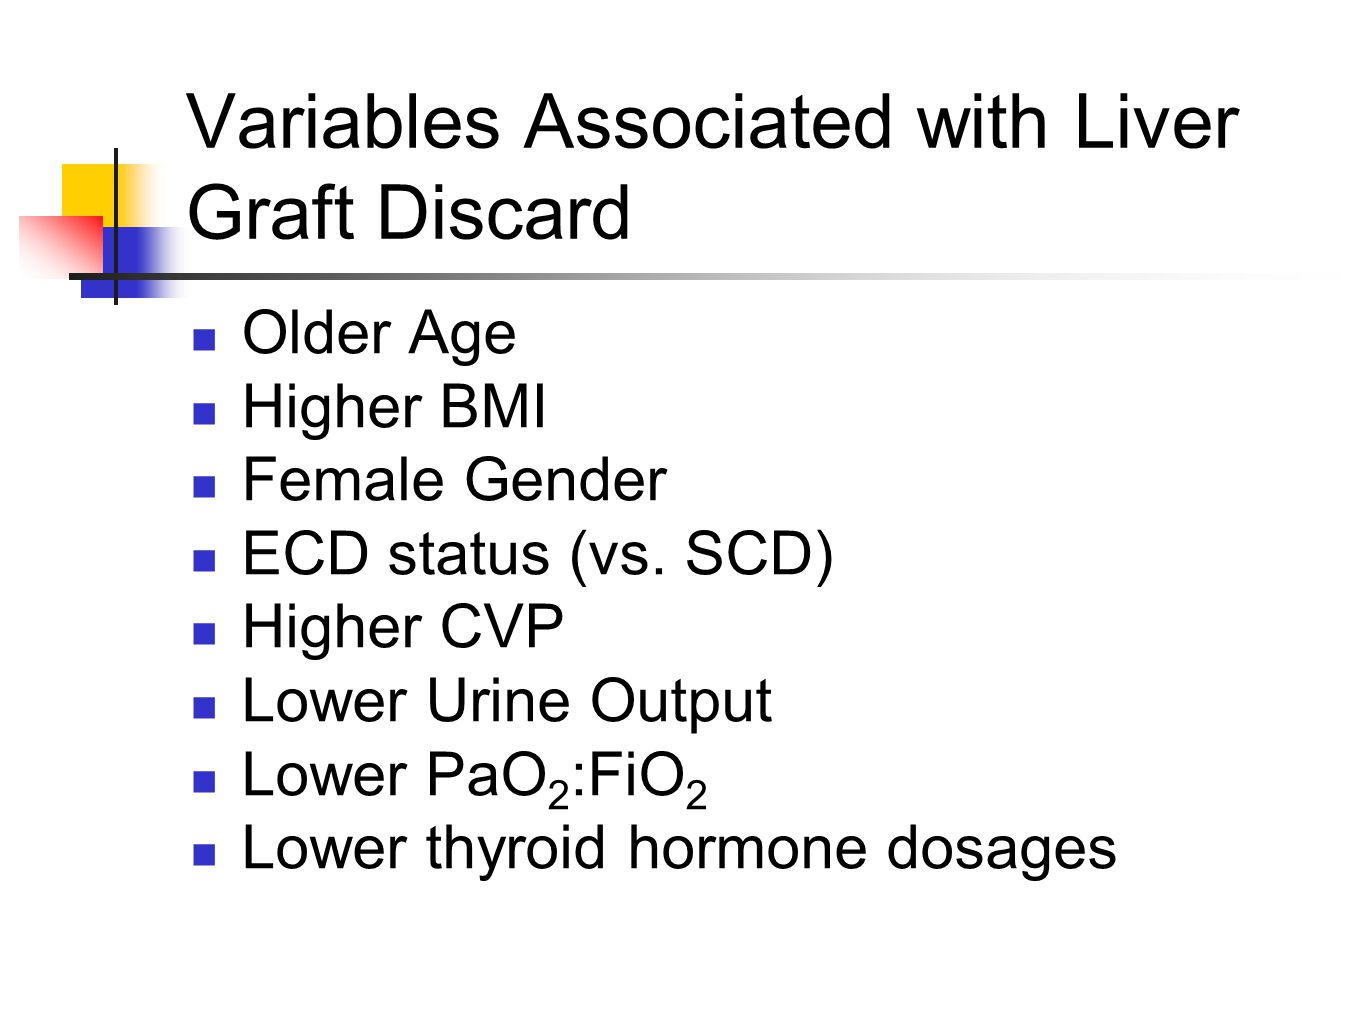 Variables Associated with Liver Graft Discard Older Age Higher BMI Female Gender ECD status (vs. SCD) Higher CVP Lower Urine Output Lower PaO 2 :FiO 2